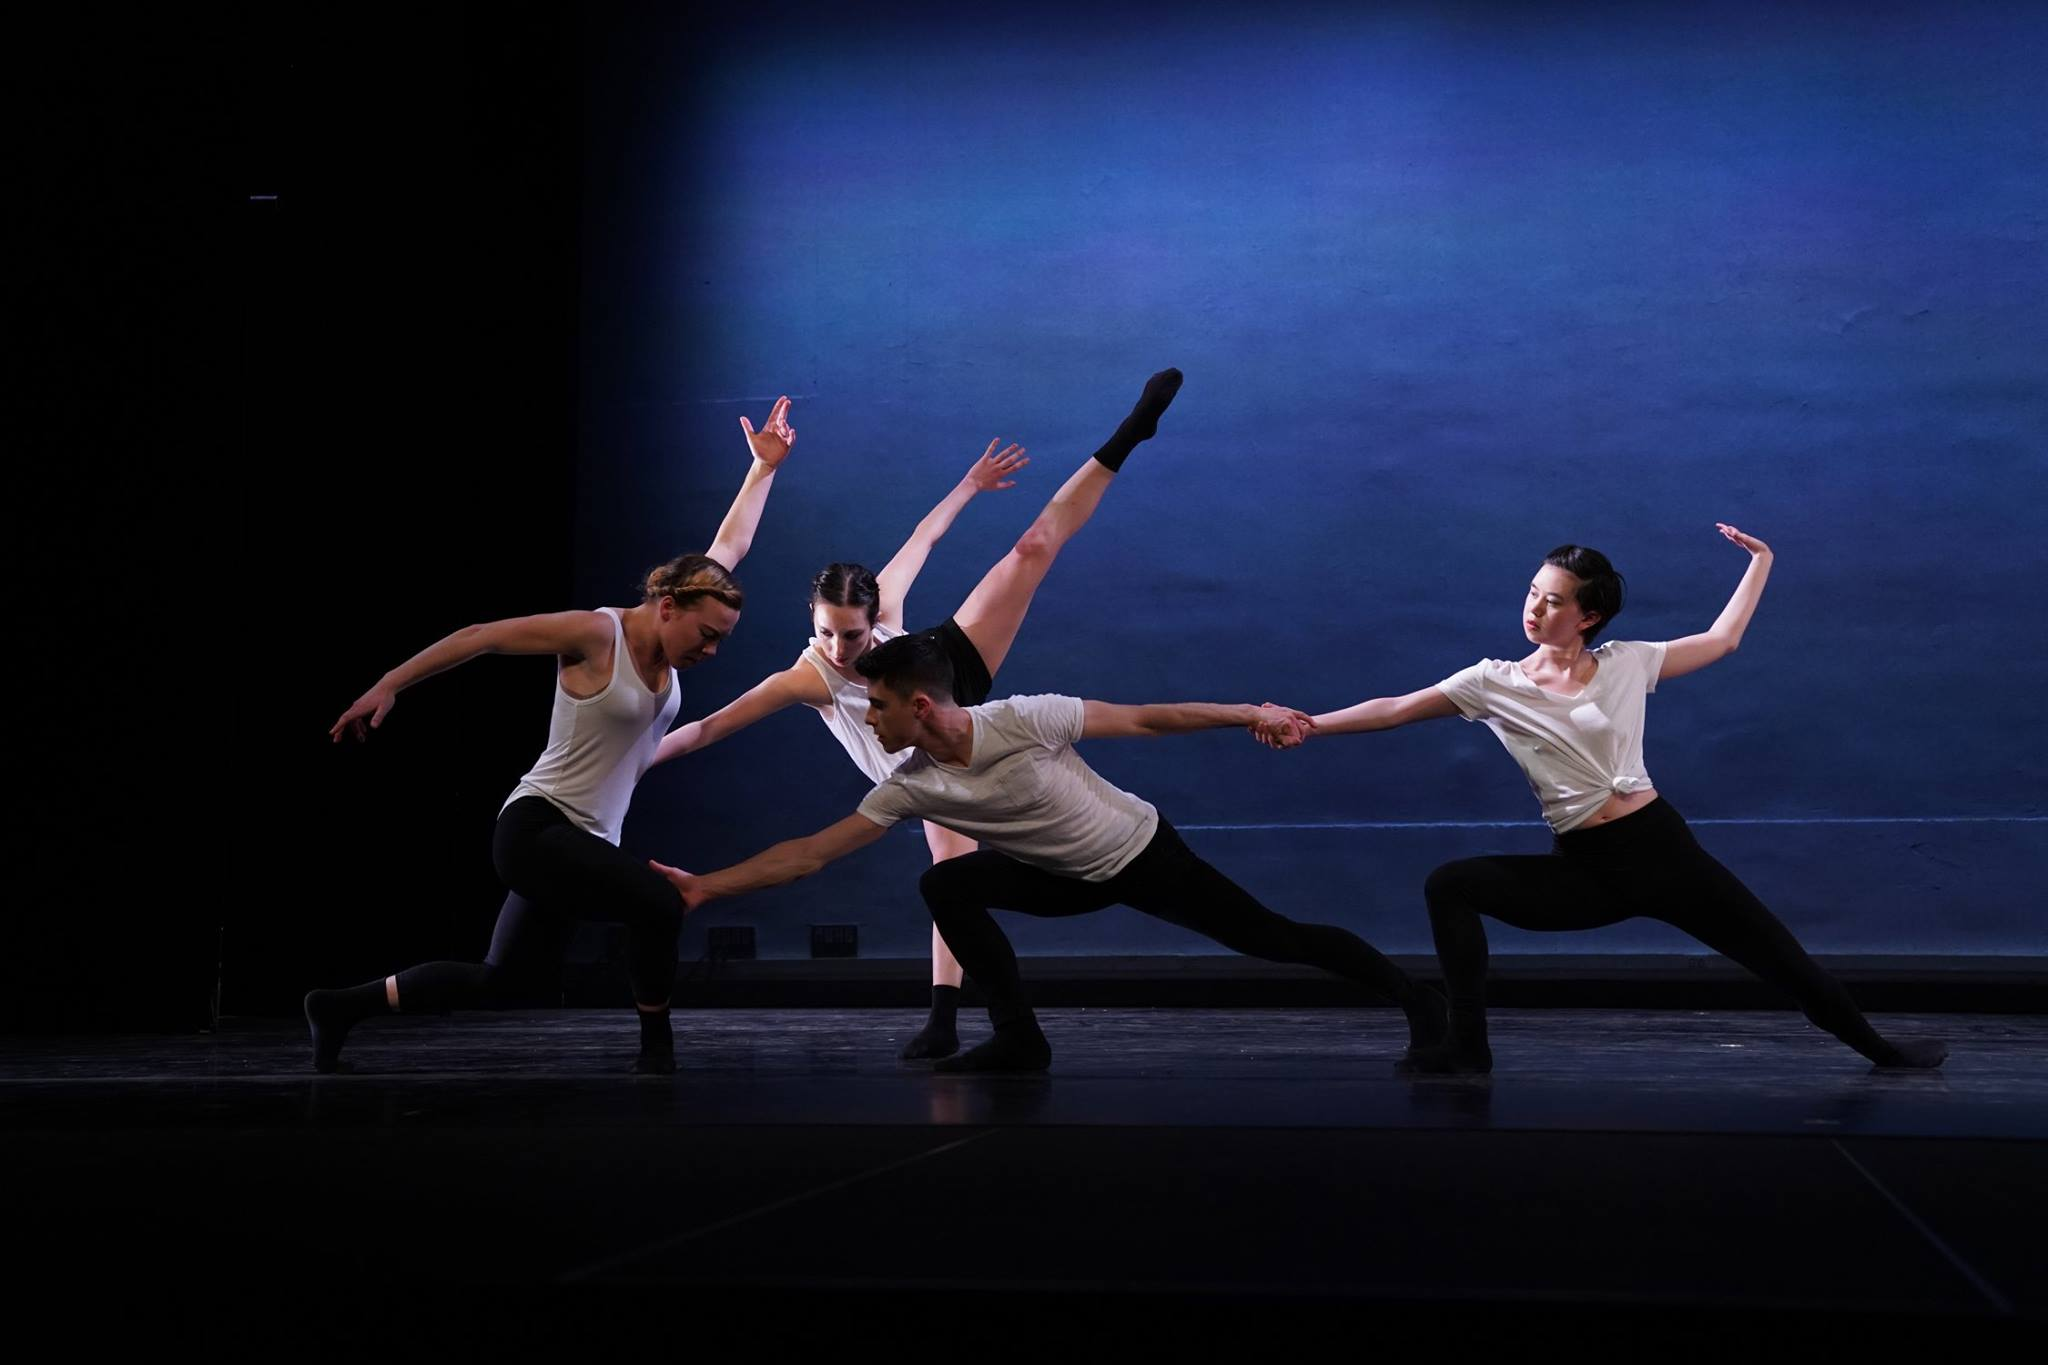 """Toe the Line"" choreographed by Caili Quan"